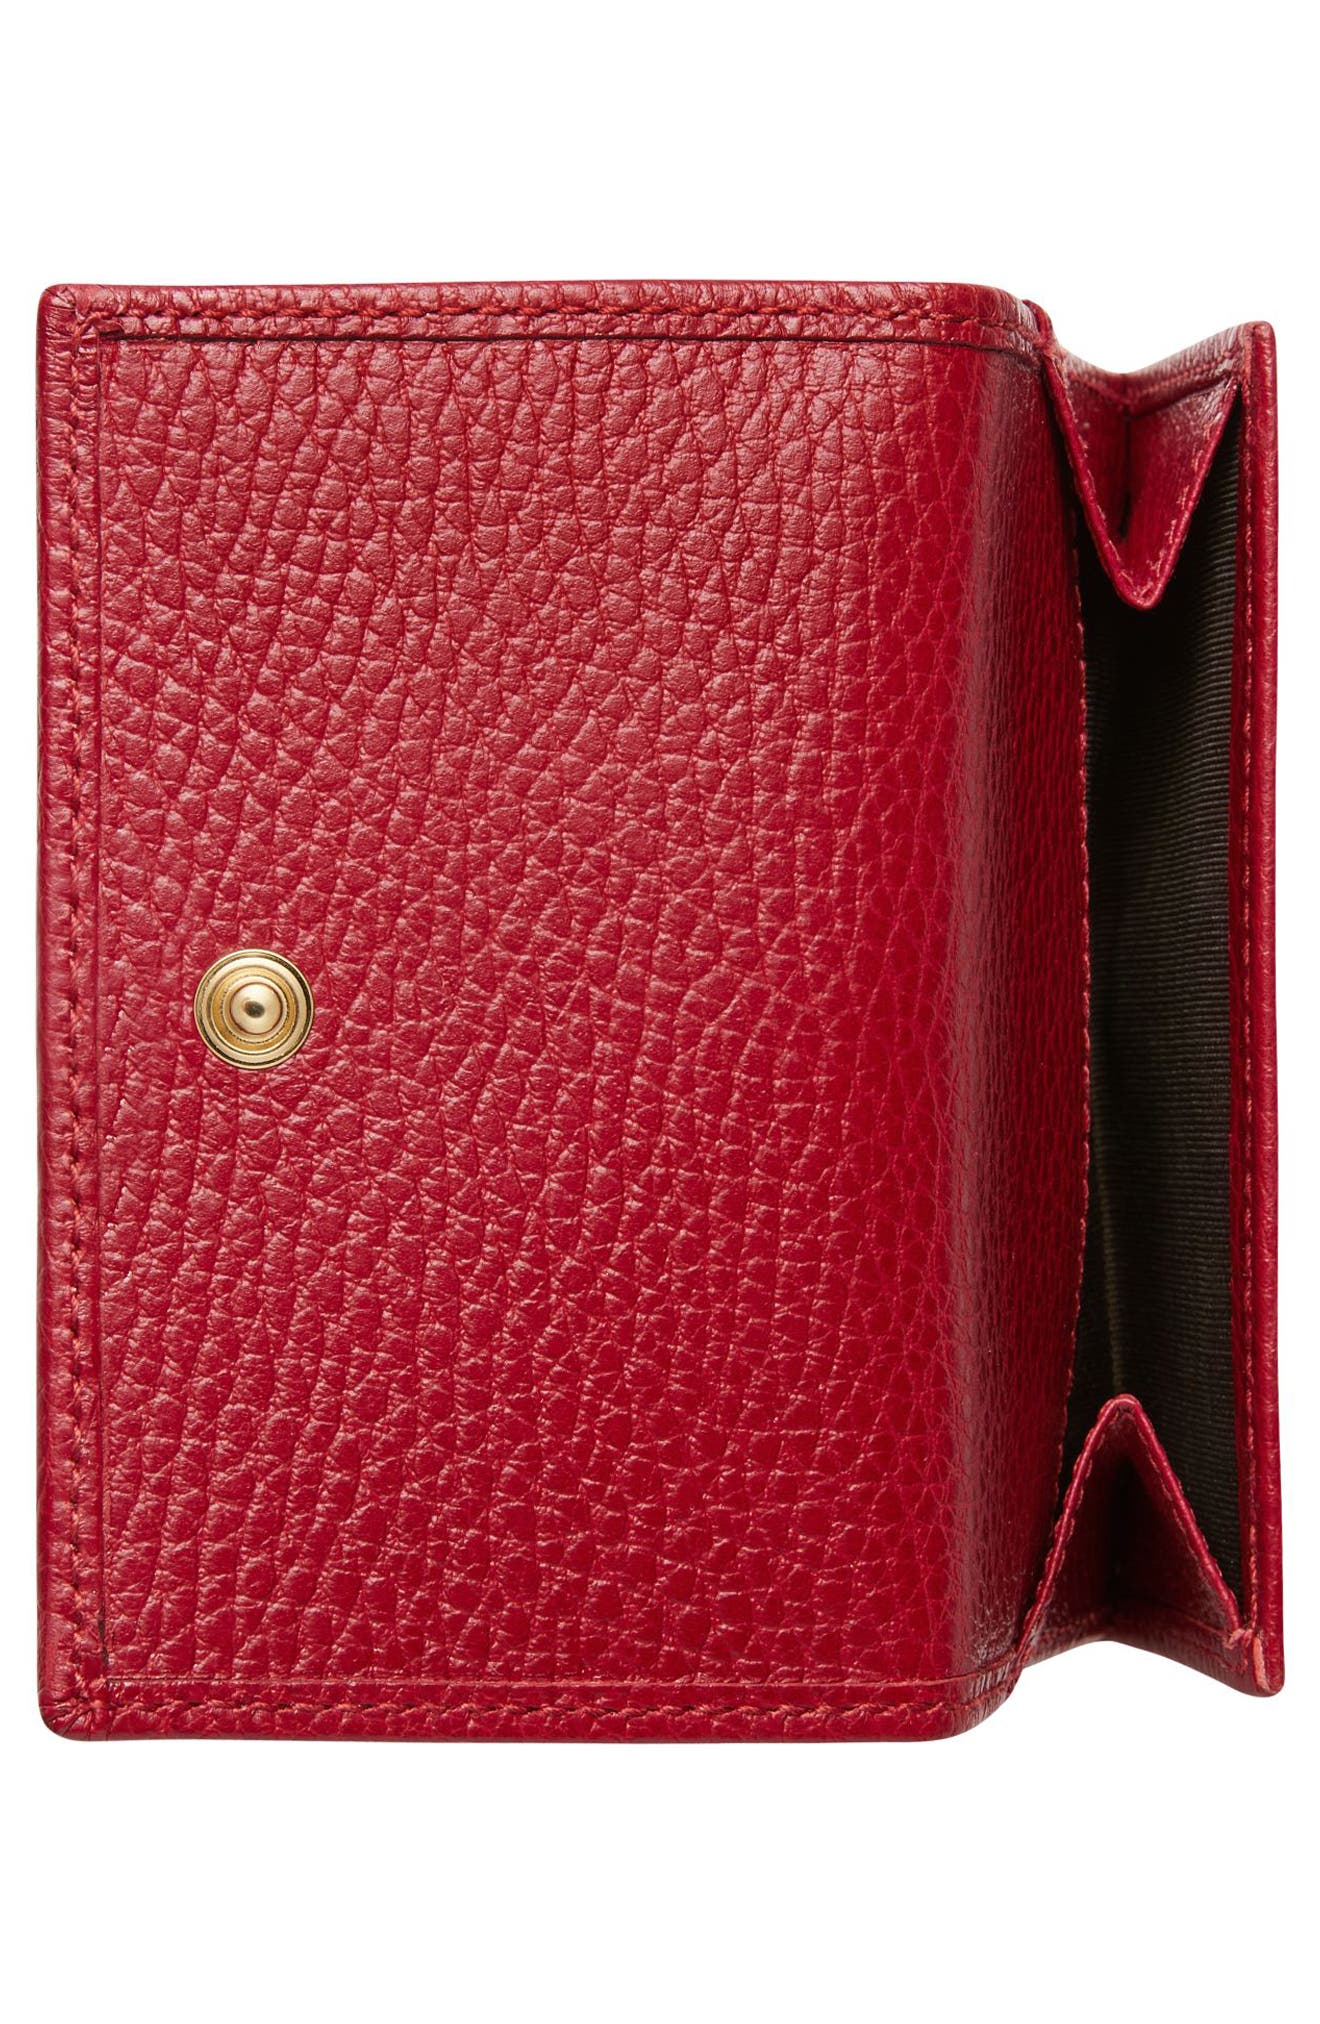 Petite Marmont Leather French Wallet,                             Alternate thumbnail 4, color,                             Hibiscus Red